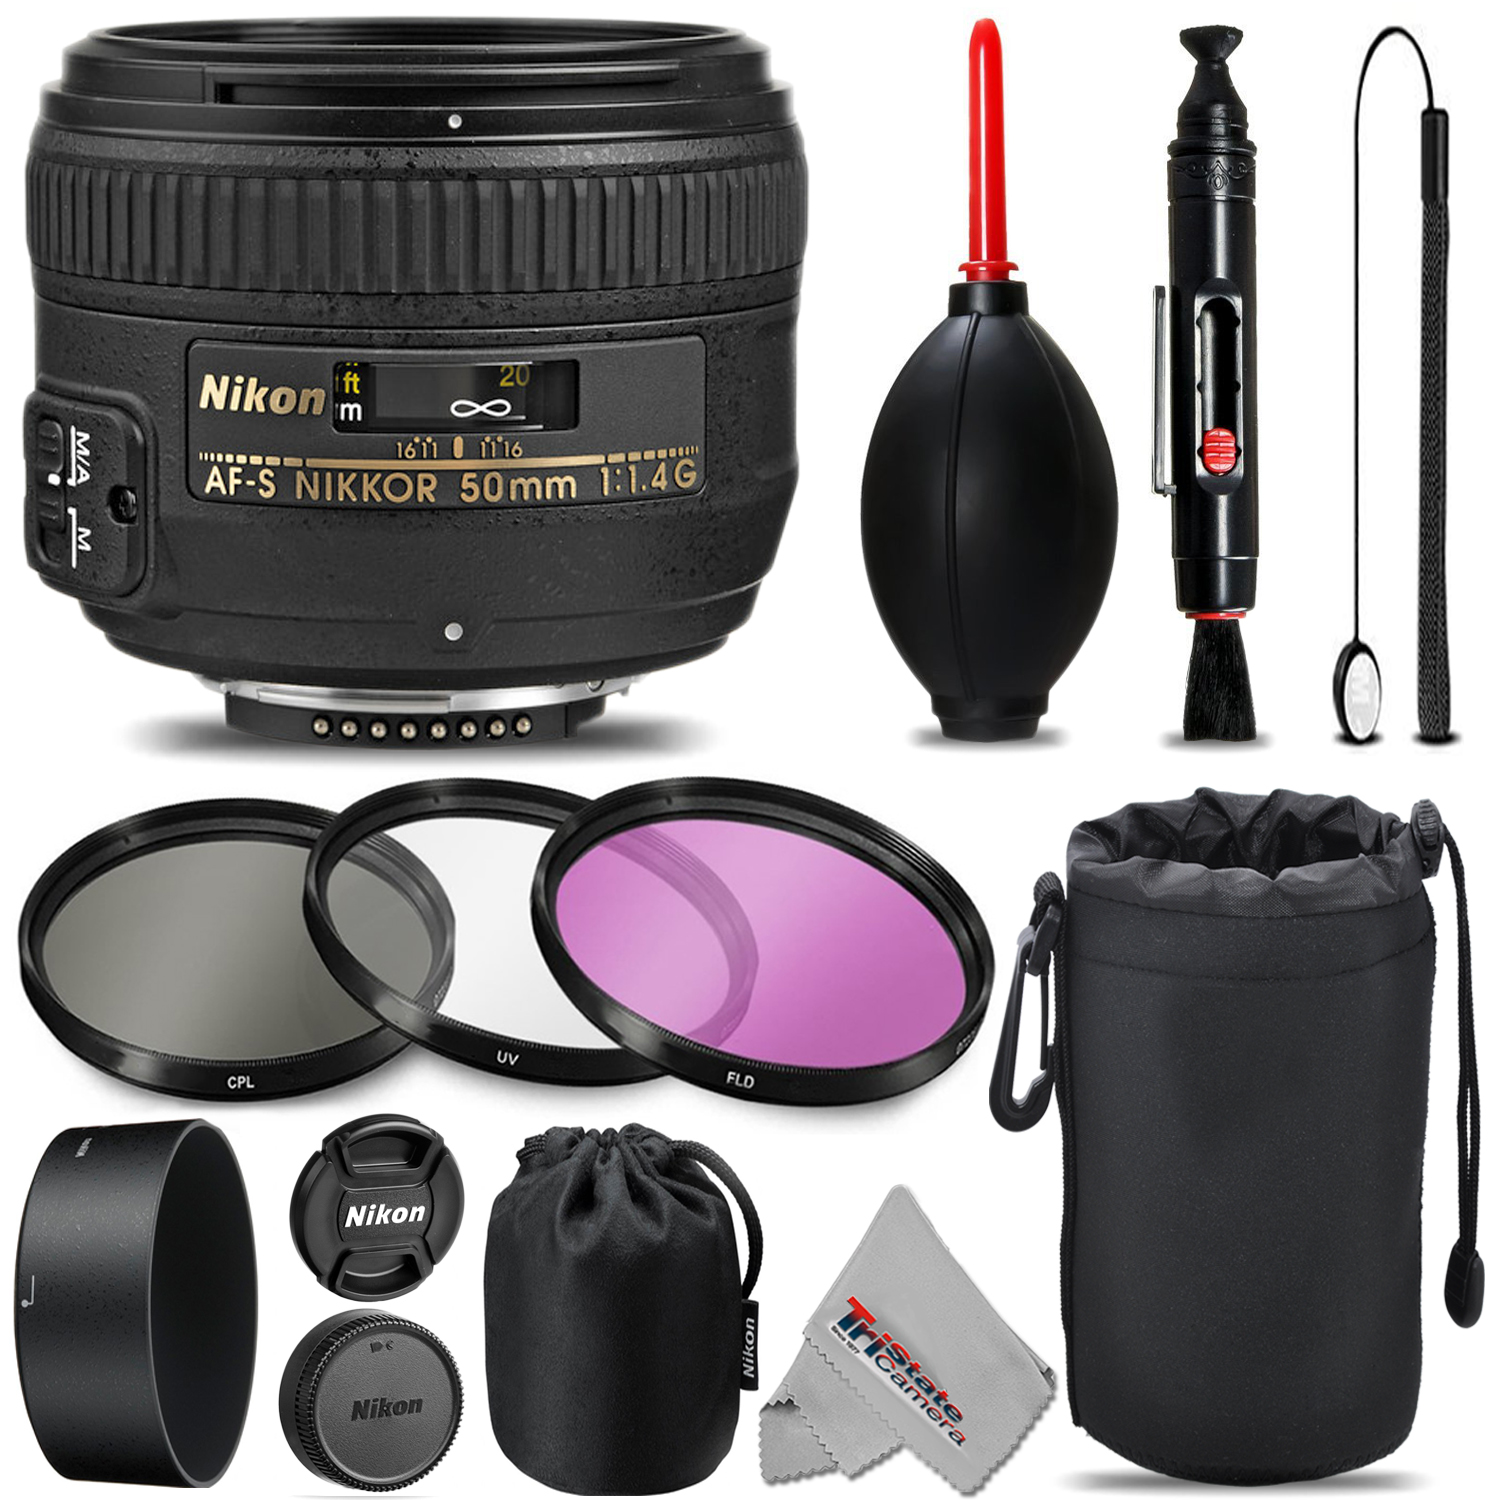 Nikon AF-S NIKKOR 50mm f/1.4G Lens For D3000, D3100, D3200, D3300, D5000, D5100, D5200, D5300, D5500, D7000, D7100 Nikon Digital SLR. All Original Accessories Included - International Version